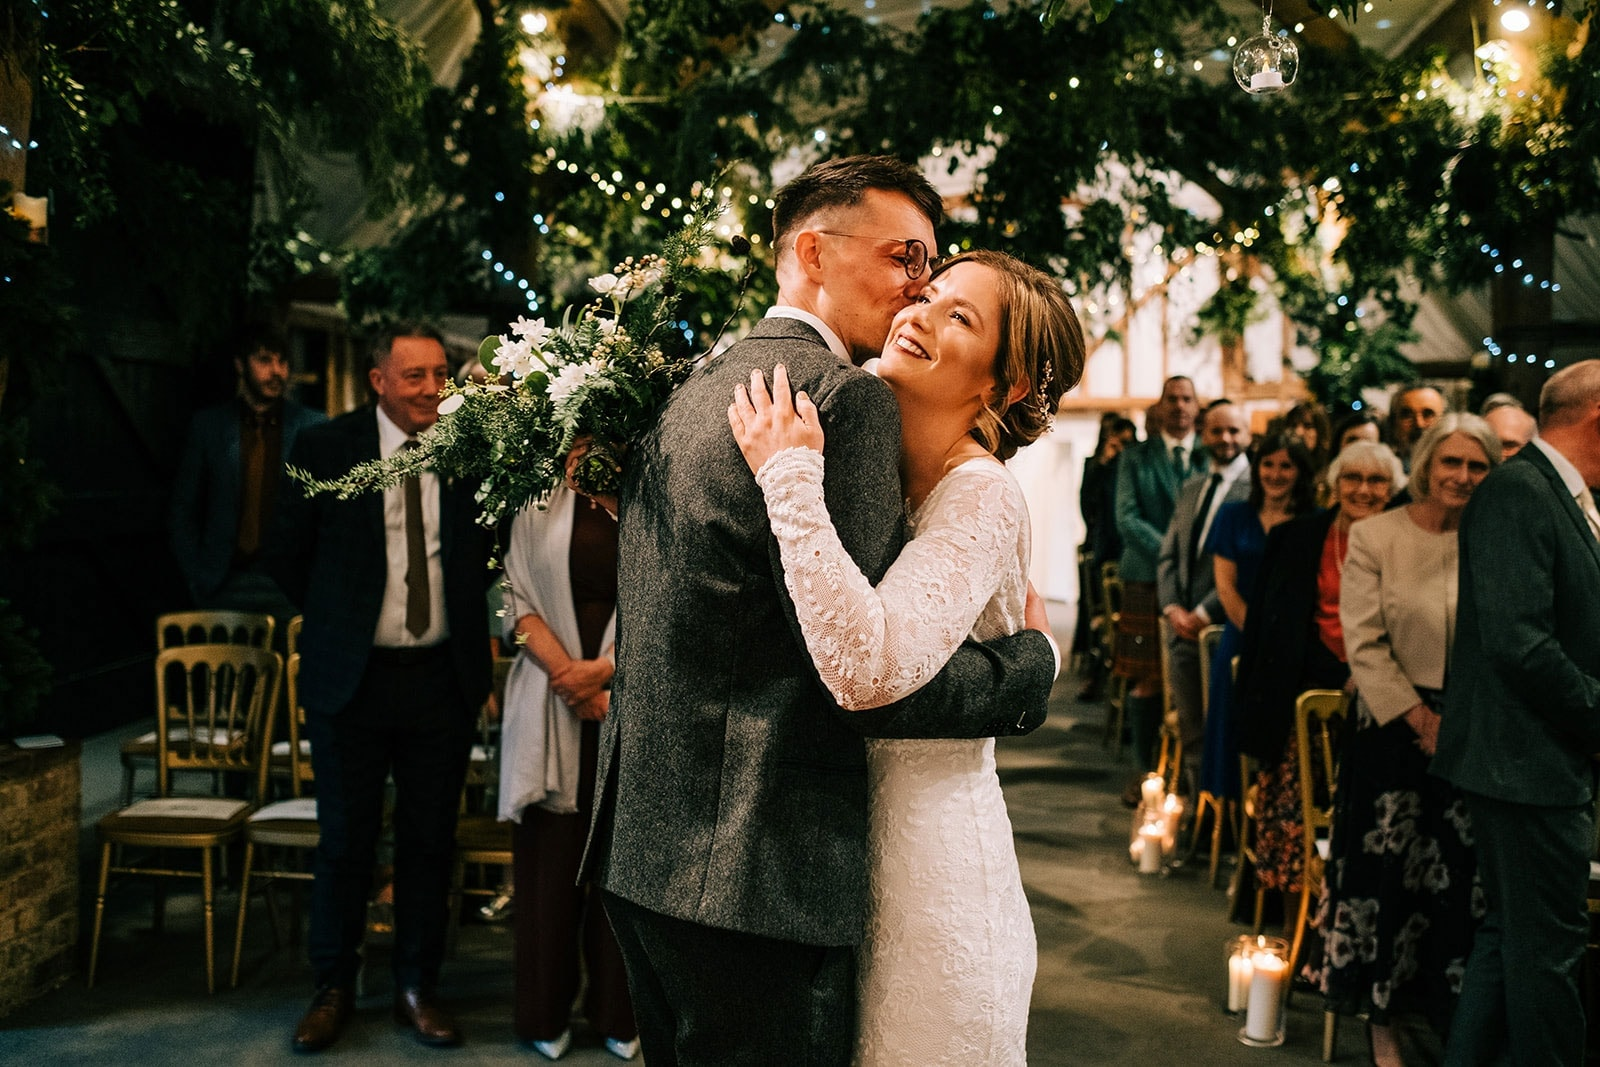 Louise and Steve have a cuddle when she reaches him at the end of the aisle